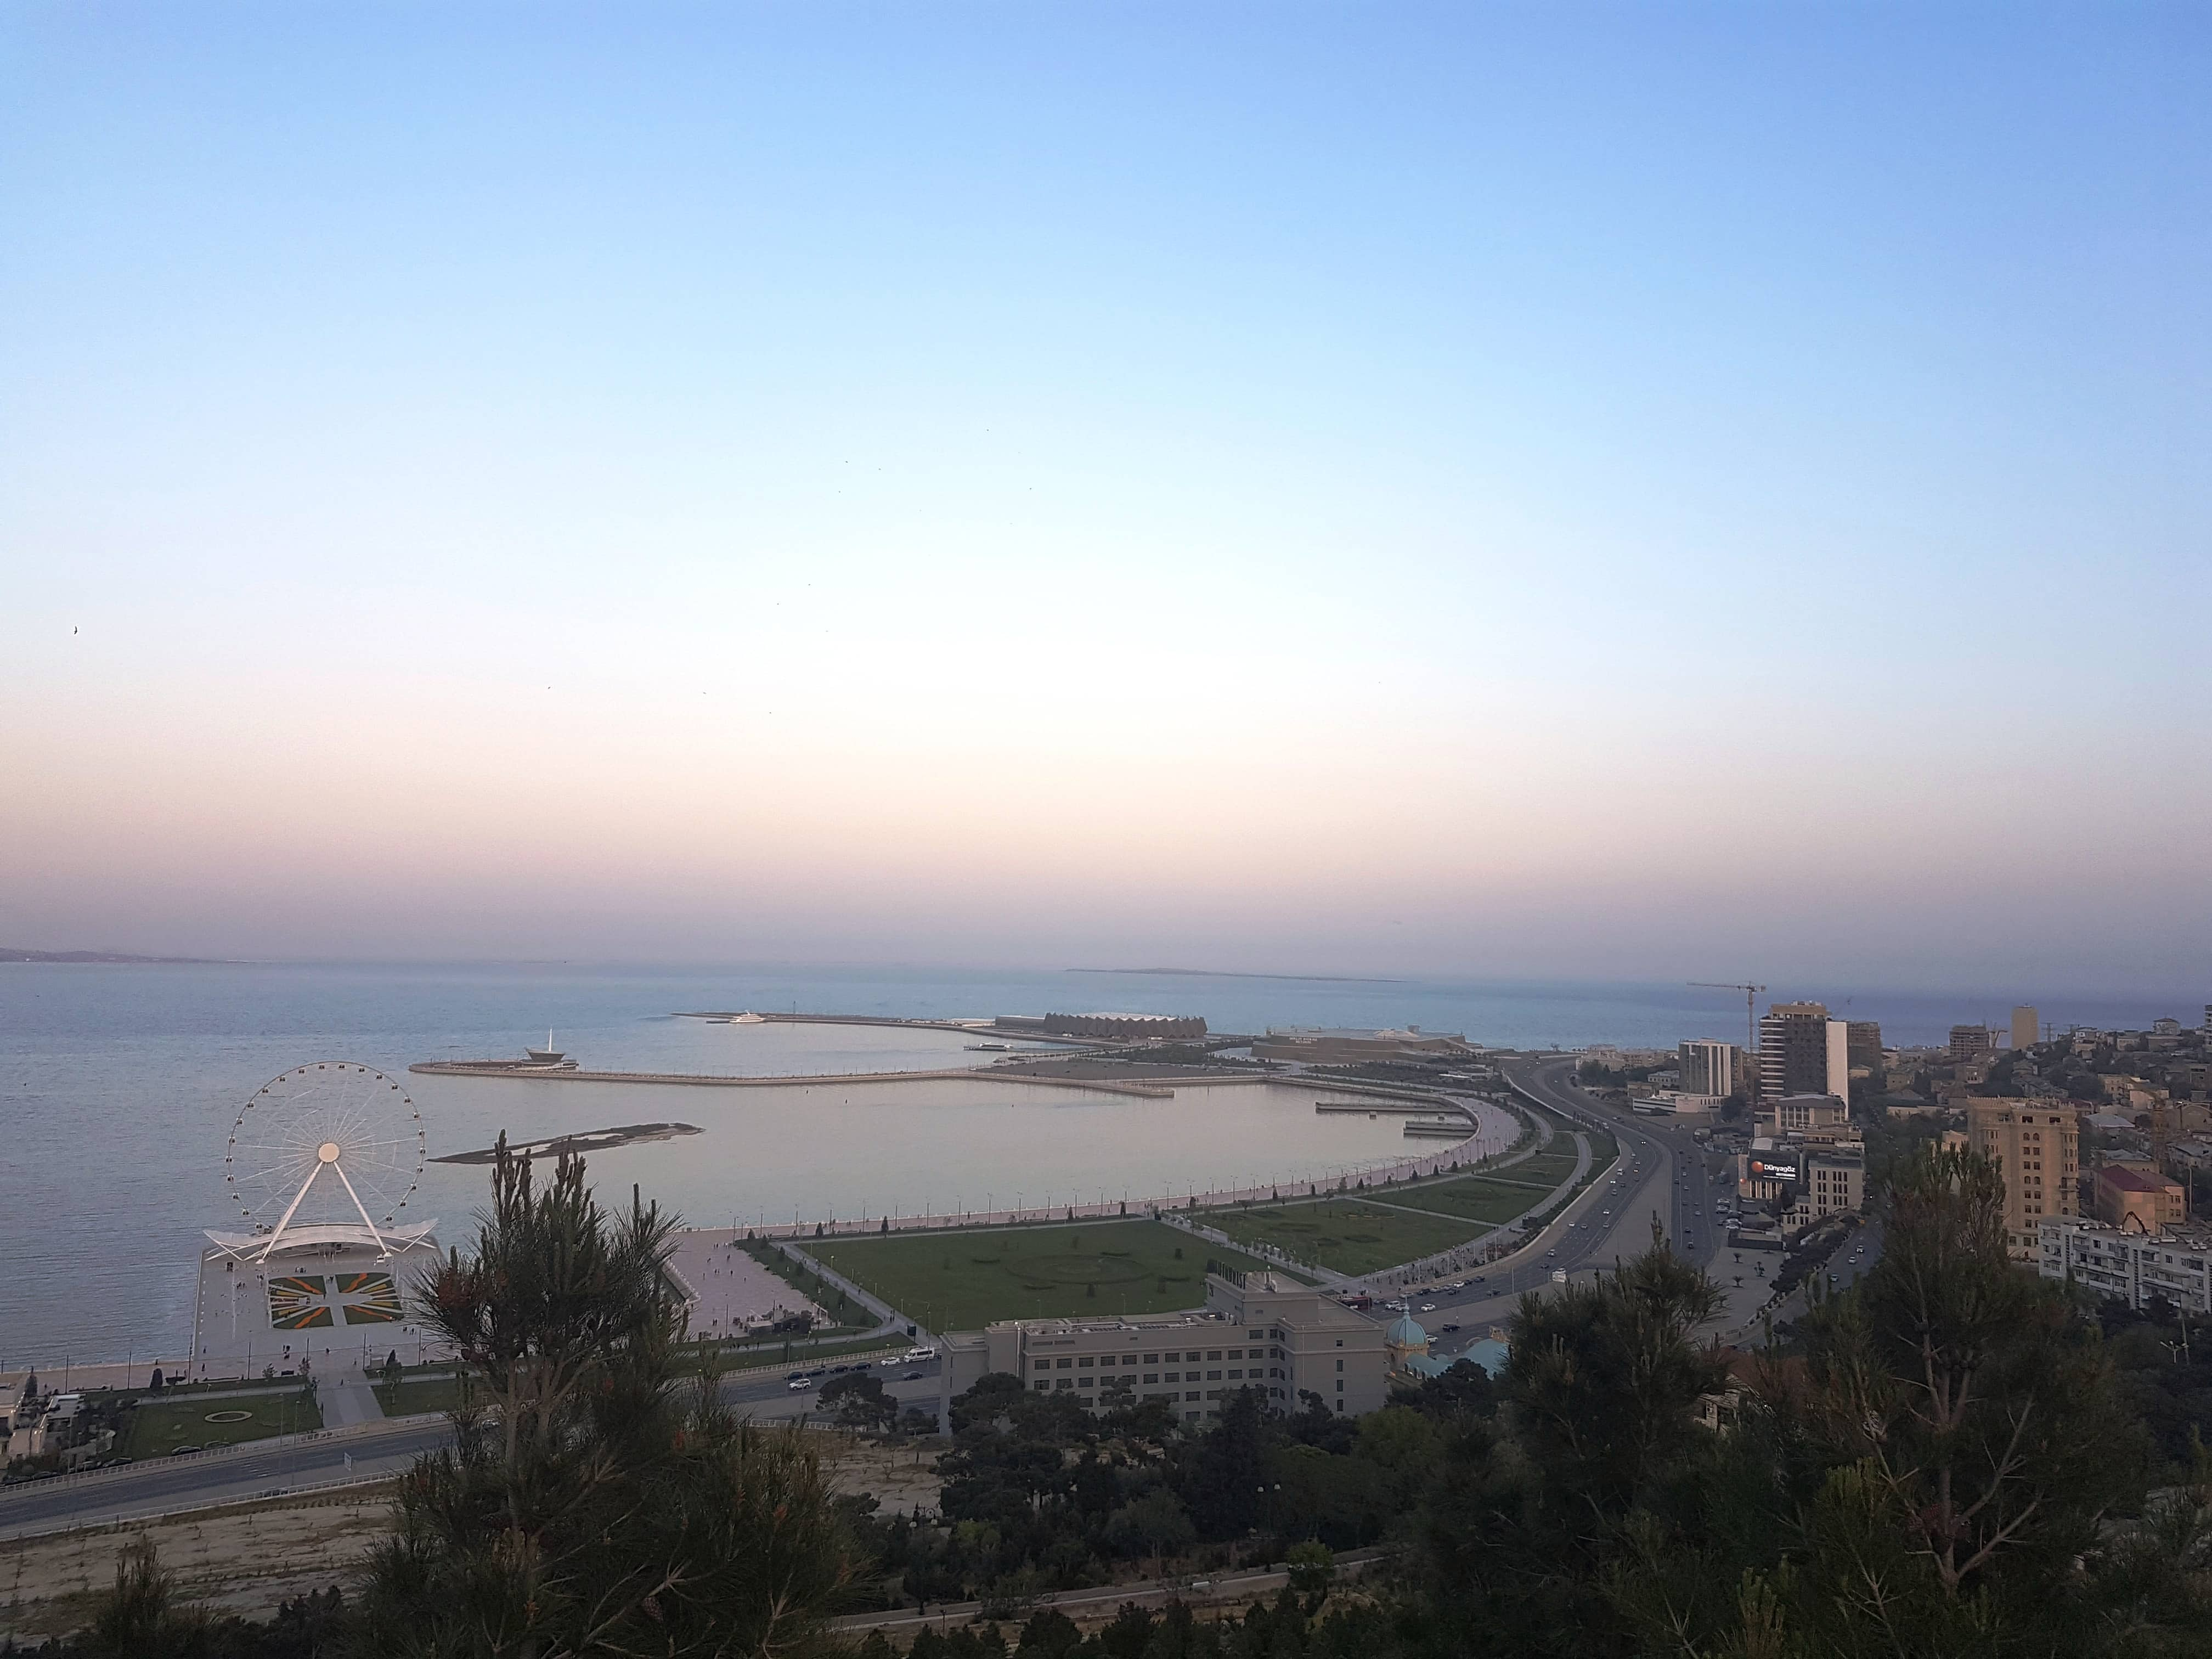 A hilltop view of the Sea and boulevard.